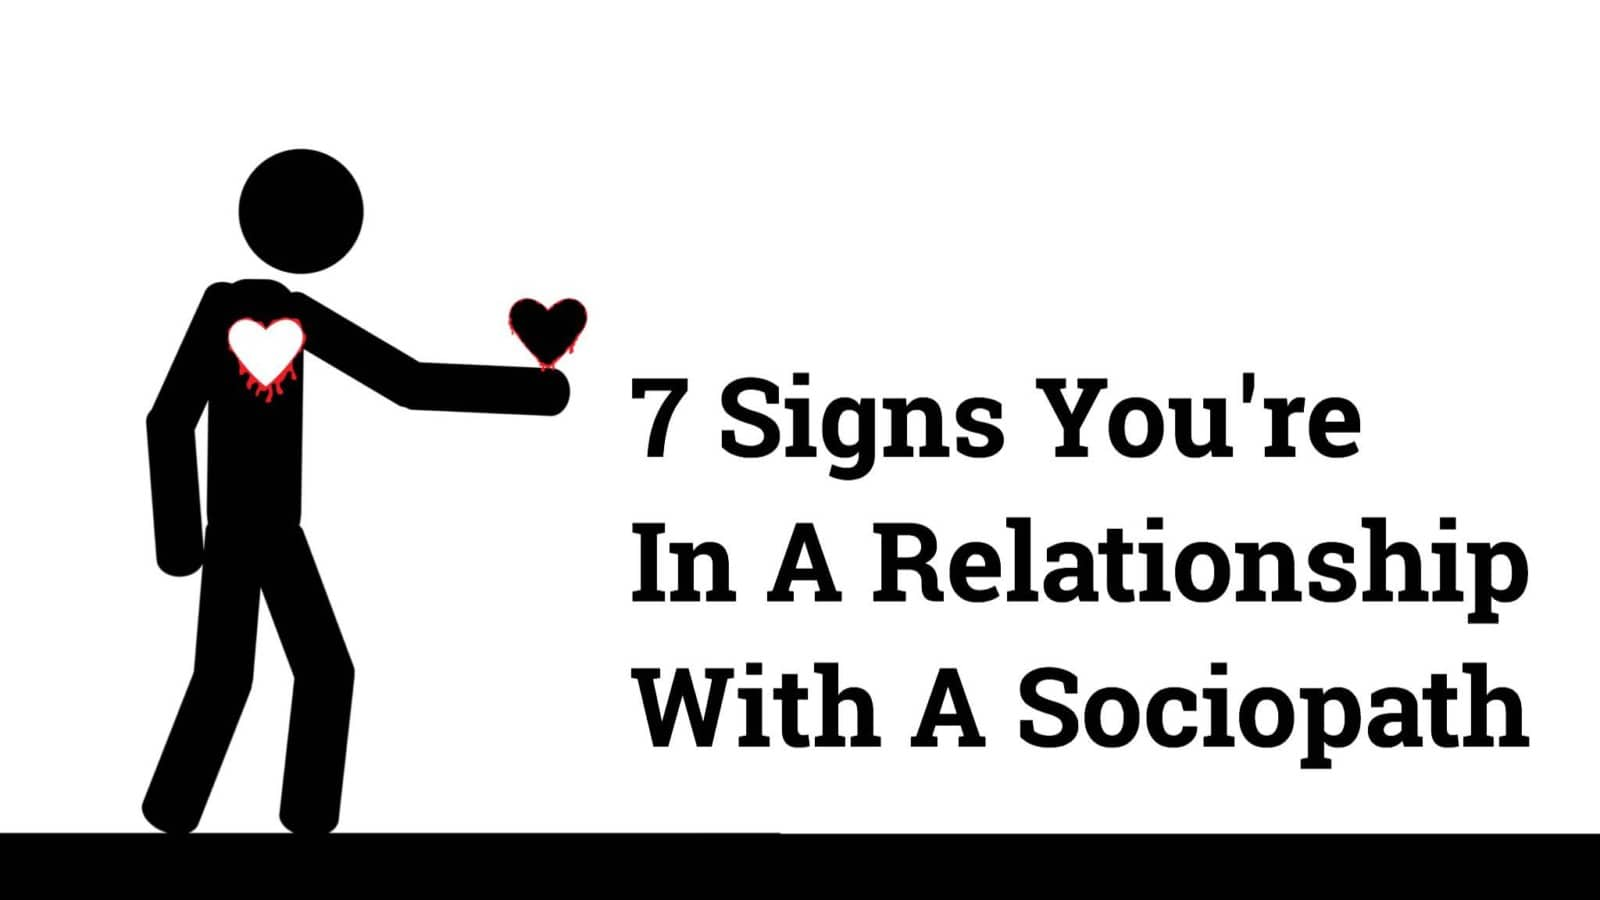 7 Signs You're In A Relationship With A Sociopath